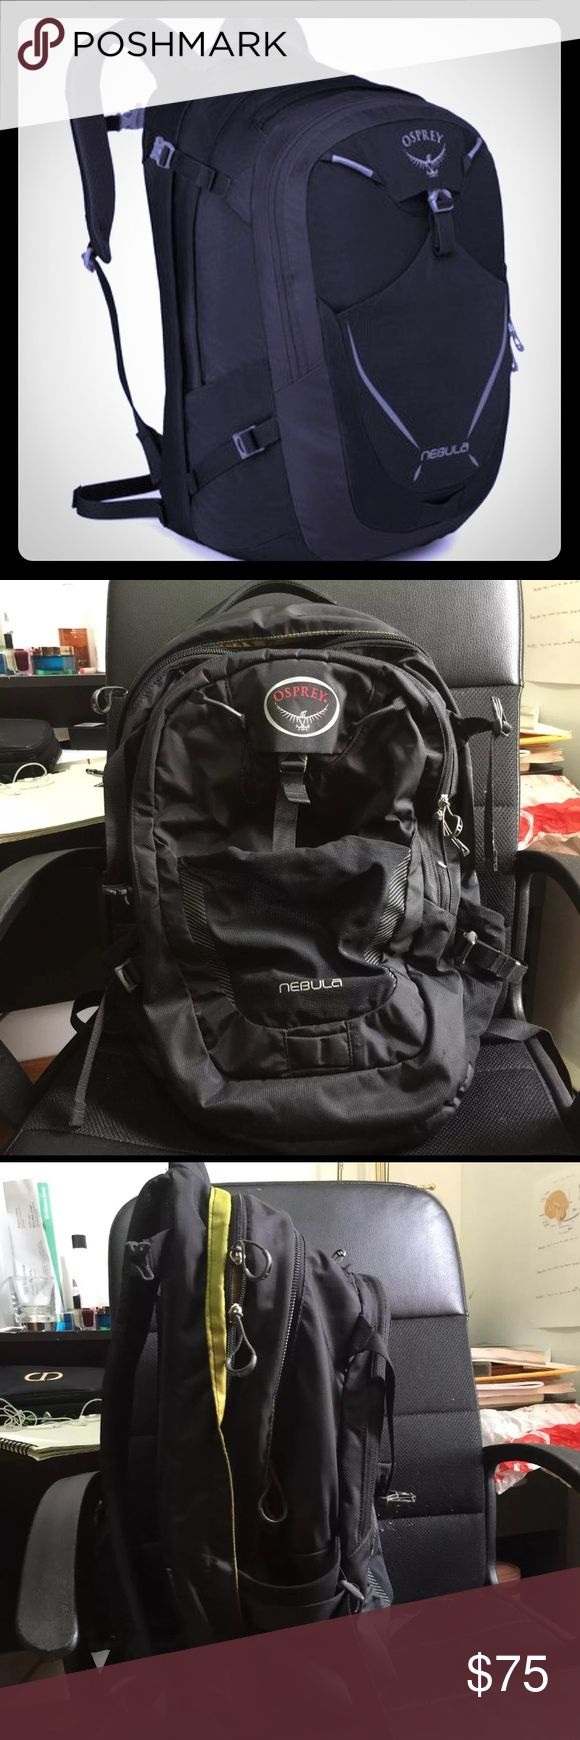 Osprey Nebula 34L Backpack Day Pack Great condition, slight imperfection on one shoulder strap  - Internal document sleeve  - Internal organisation pocket  - Internal key attachment clip  - Sternum strap with emergency whistle  - Side compression straps  - LED bike light attachment point  - Reflective graphics  - Grab handles - 34 liters of storage Osprey Bags Backpacks